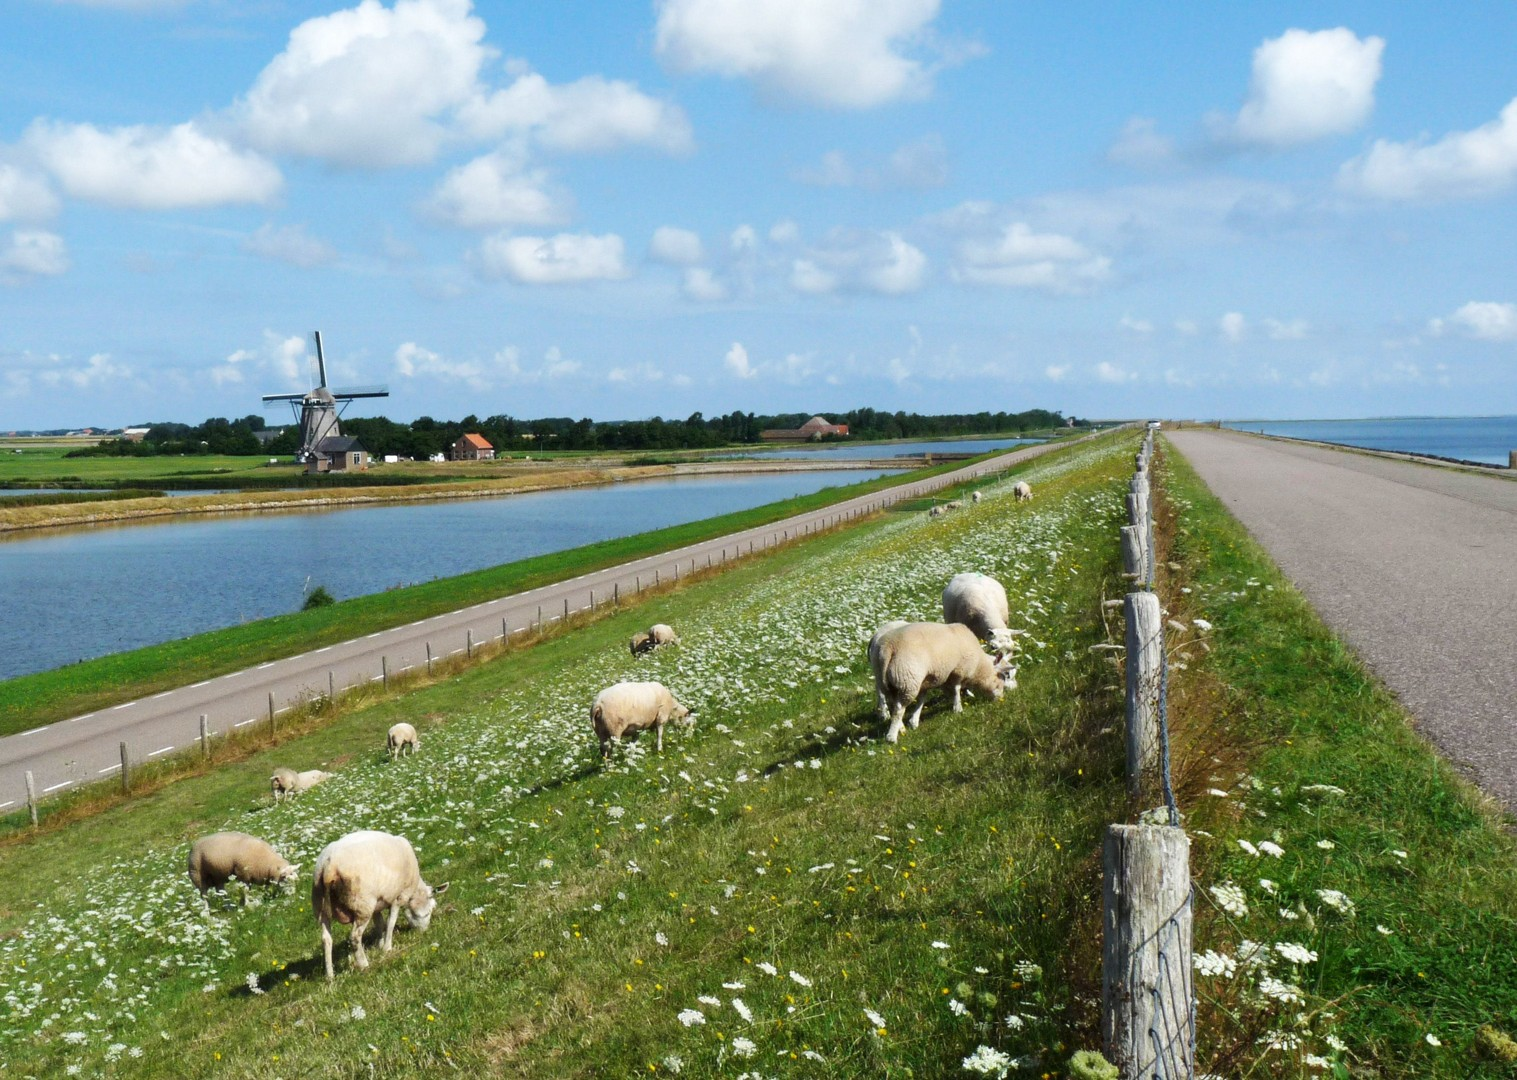 hoorn-cycling-holiday-in-holland-bike-and-barge-holiday.jpg - Holland - Windmills and Golden Beaches - Bike and Barge Holiday - Family Cycling